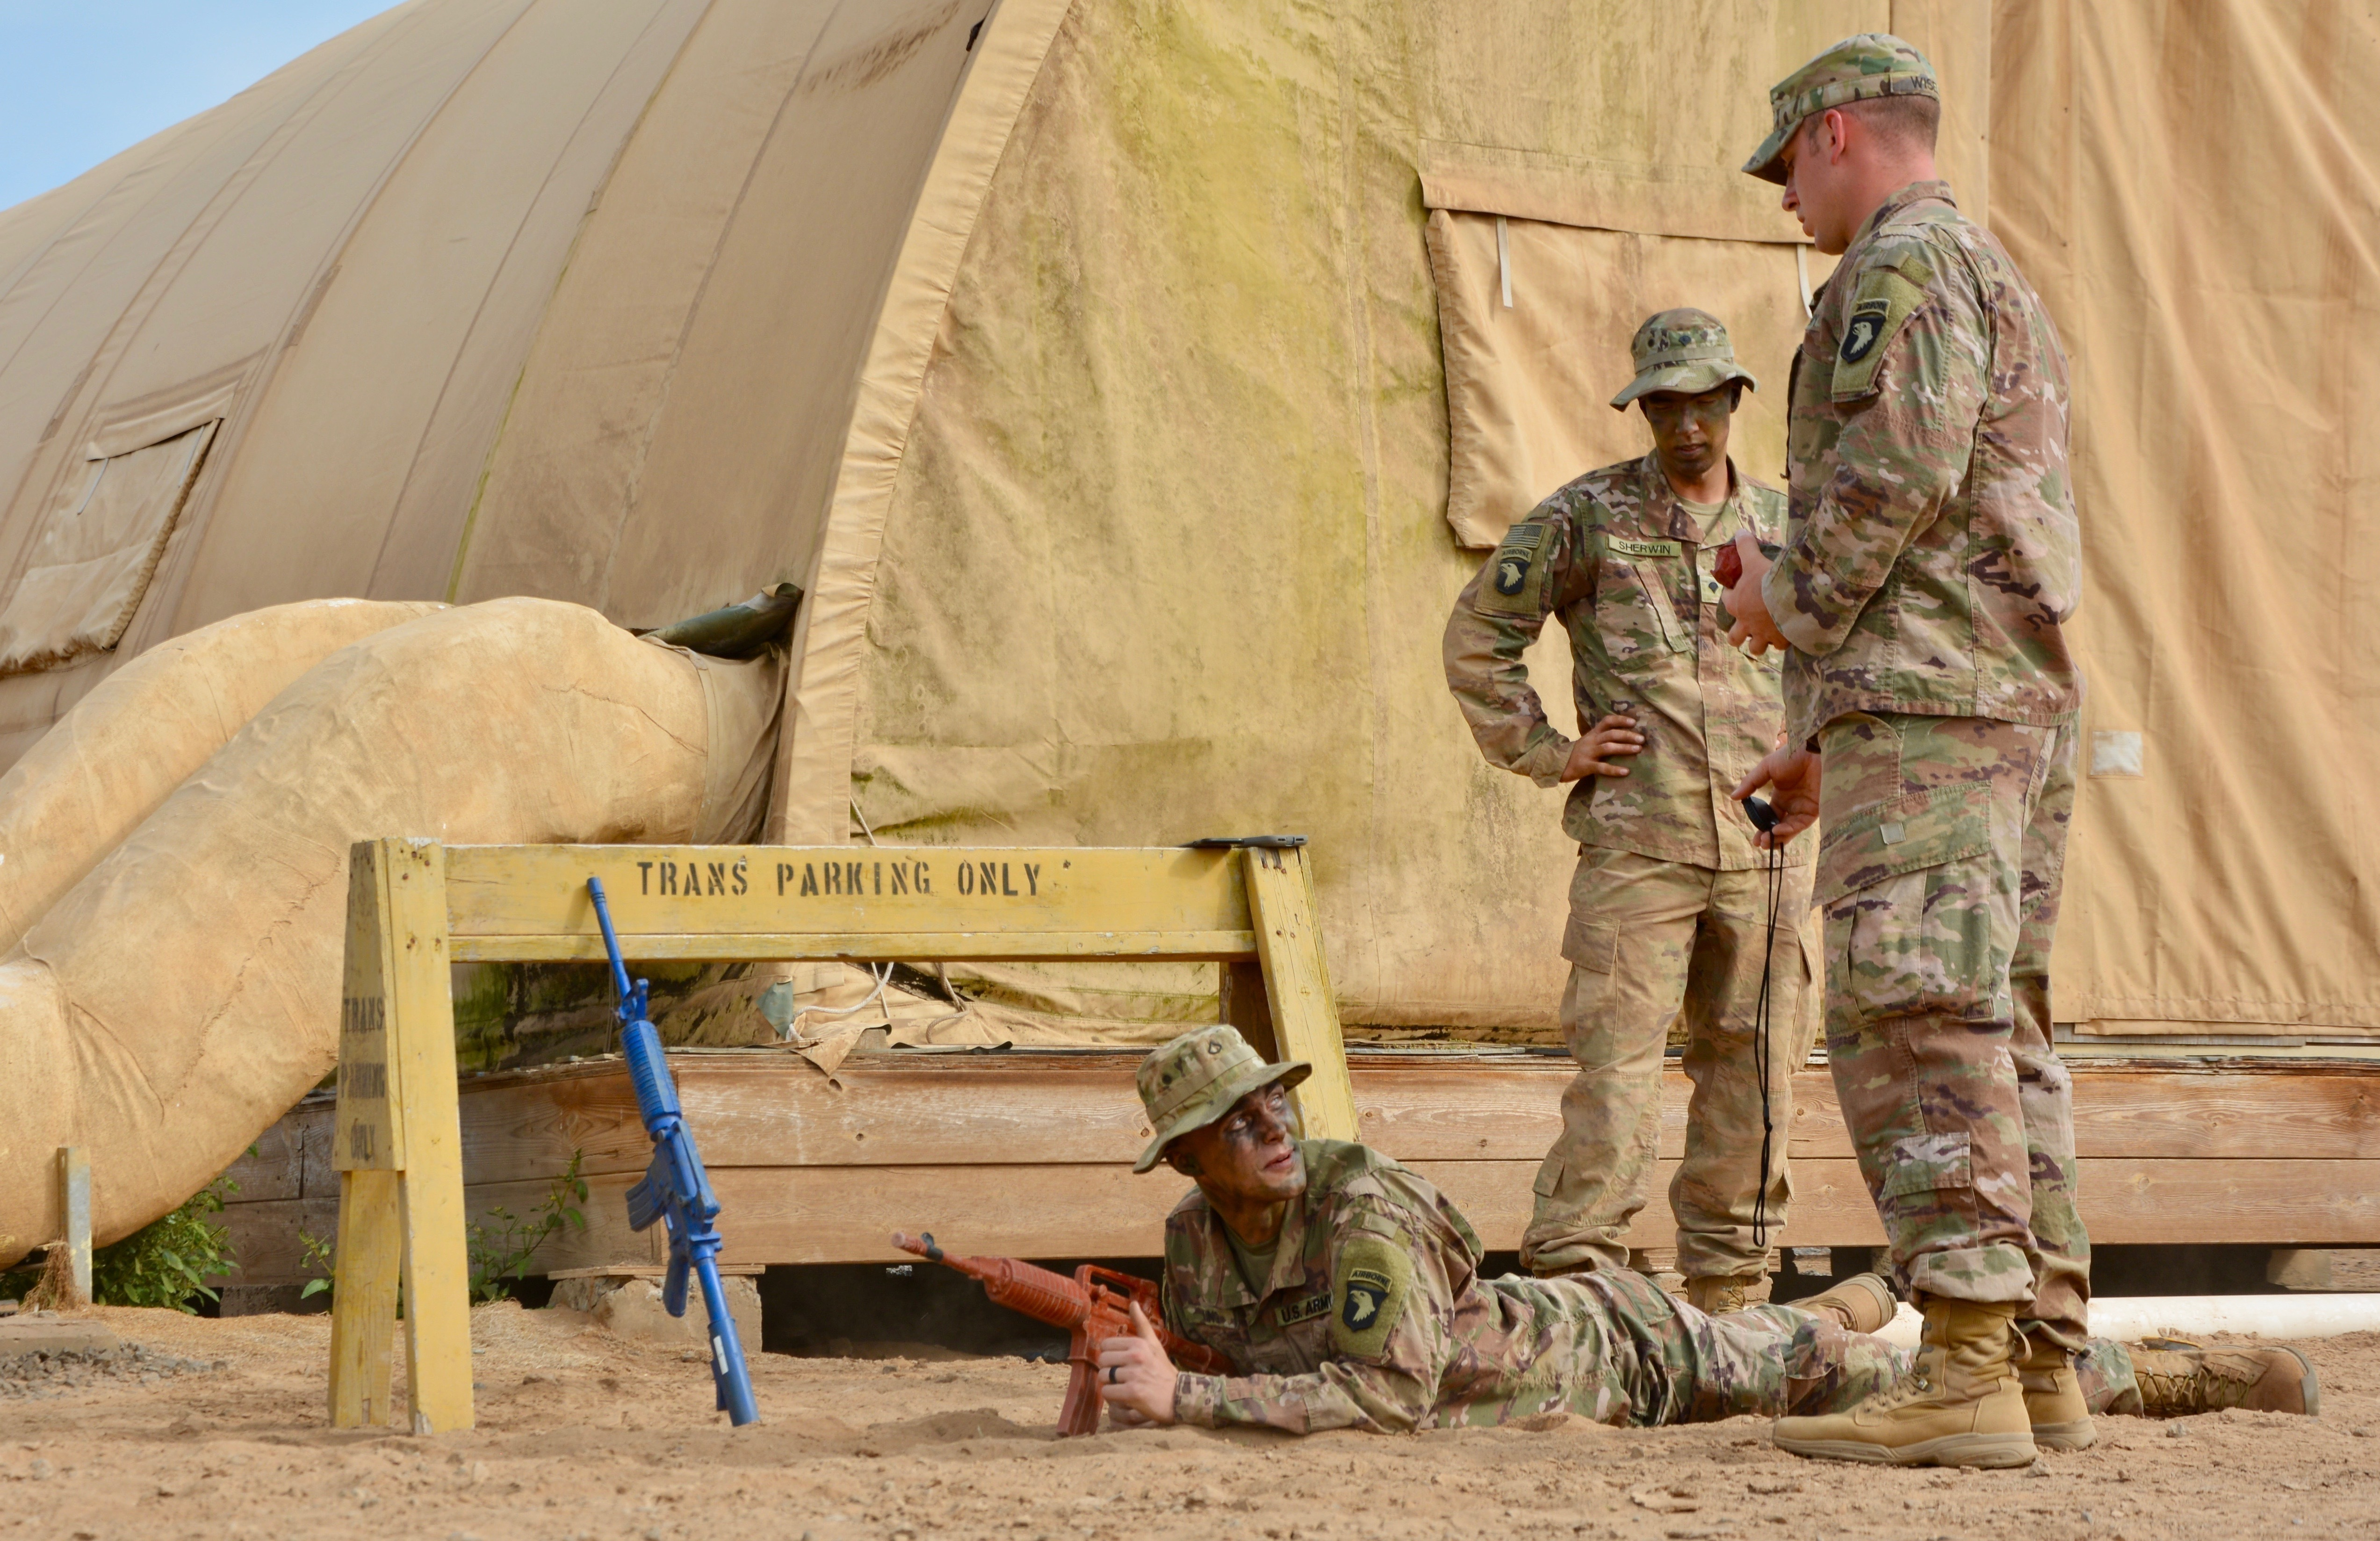 U.S. Army Staff Sgt. Tyler Wisely, assigned to Bravo Company, 1st Battalion, 26th Infantry Regiment, 101st Airborne Division, shows his Soldier the '00' on the stopwatch before testing him on his ability to disable a bunker with a hand grenade during training for the Expert Infantryman Badge at Camp Lemonnier, Djibouti, Dec. 18, 2018. Members of the Fort Campbell, Kentucky unit demonstrated a mastery of critical skills that reinforce their ability to respond to emergency situations at U.S. Embassies in the East African region as members of the Combined Joint Task Force-Horn of Africa (CJTF-HOA), East Africa Response Force (EARF).